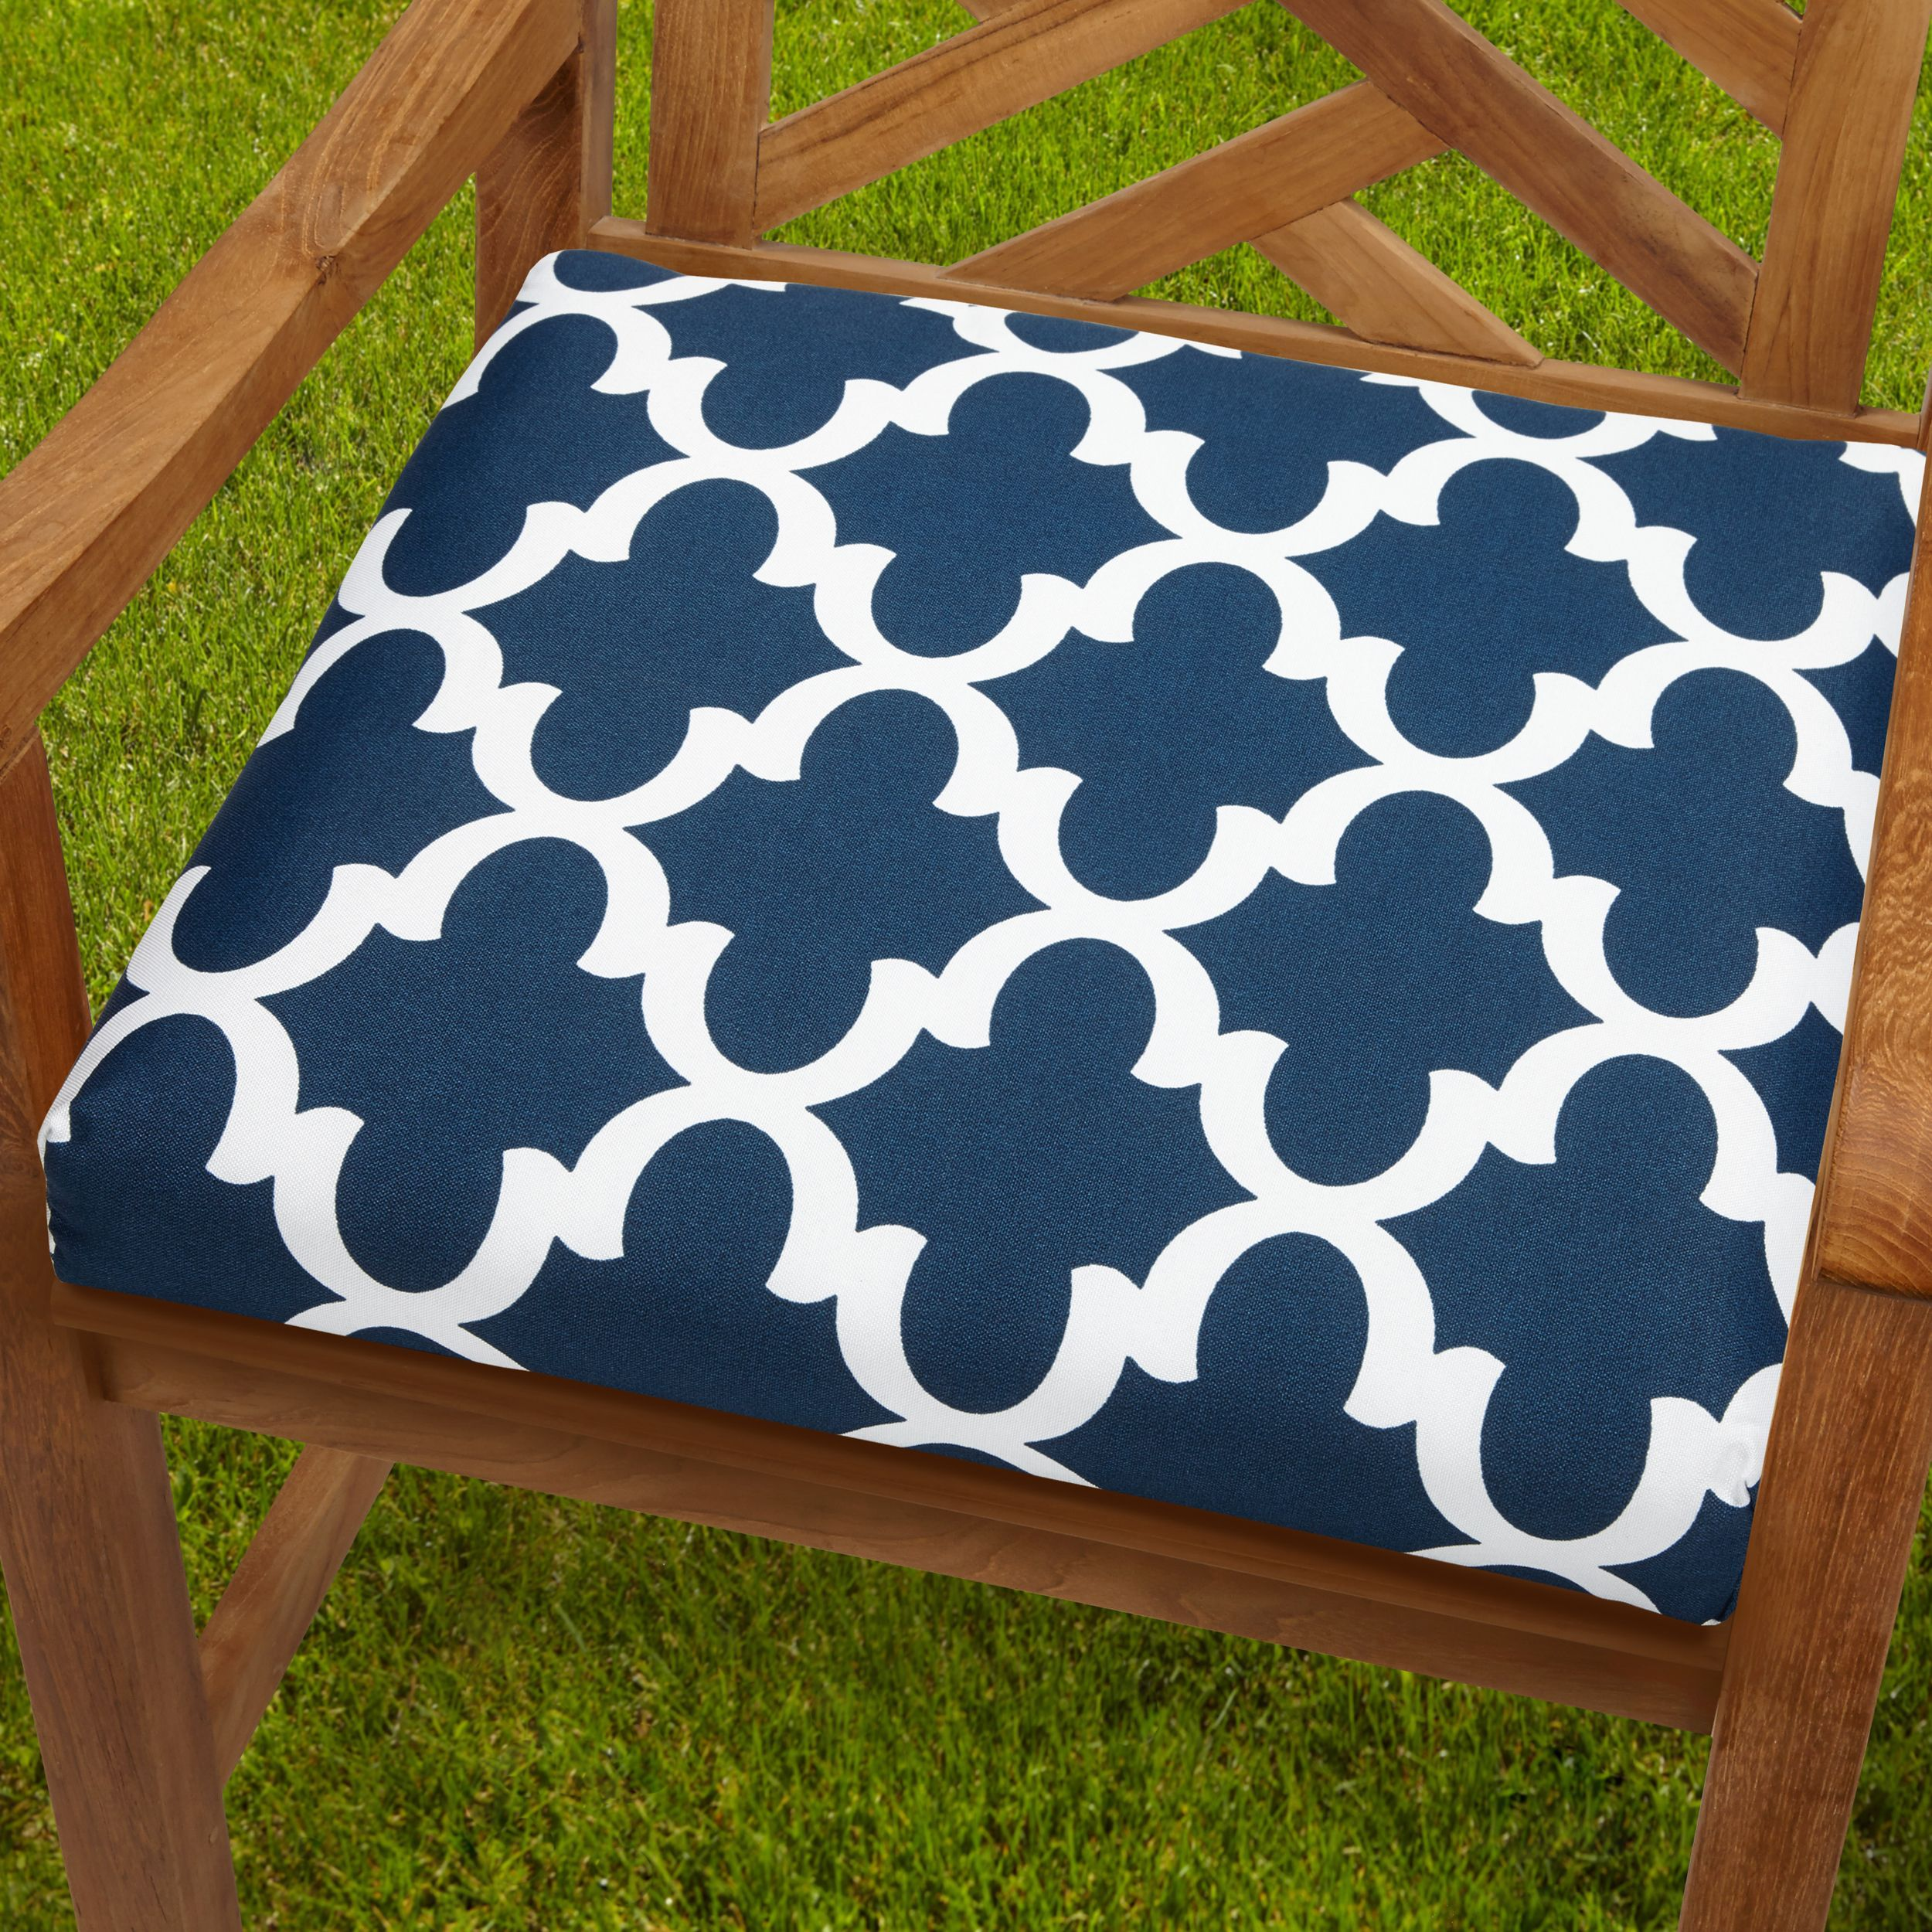 This Chair Cushion Adds Color Comfort And Simple Style To Your